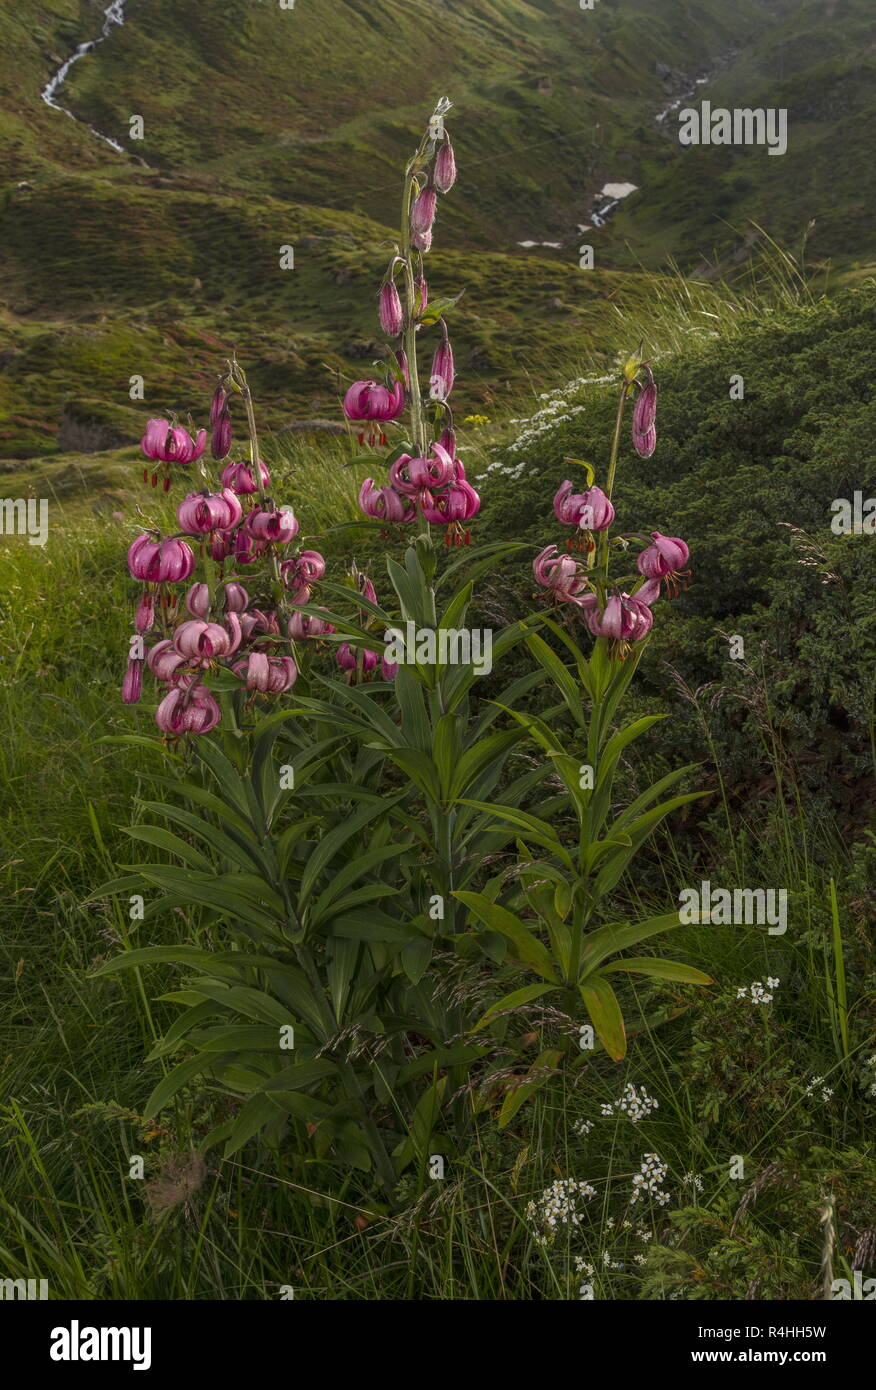 Martagon lily, Lilium martagon in flower in high pastures on the Nufenen Pass, Swiss Alps. Stock Photo